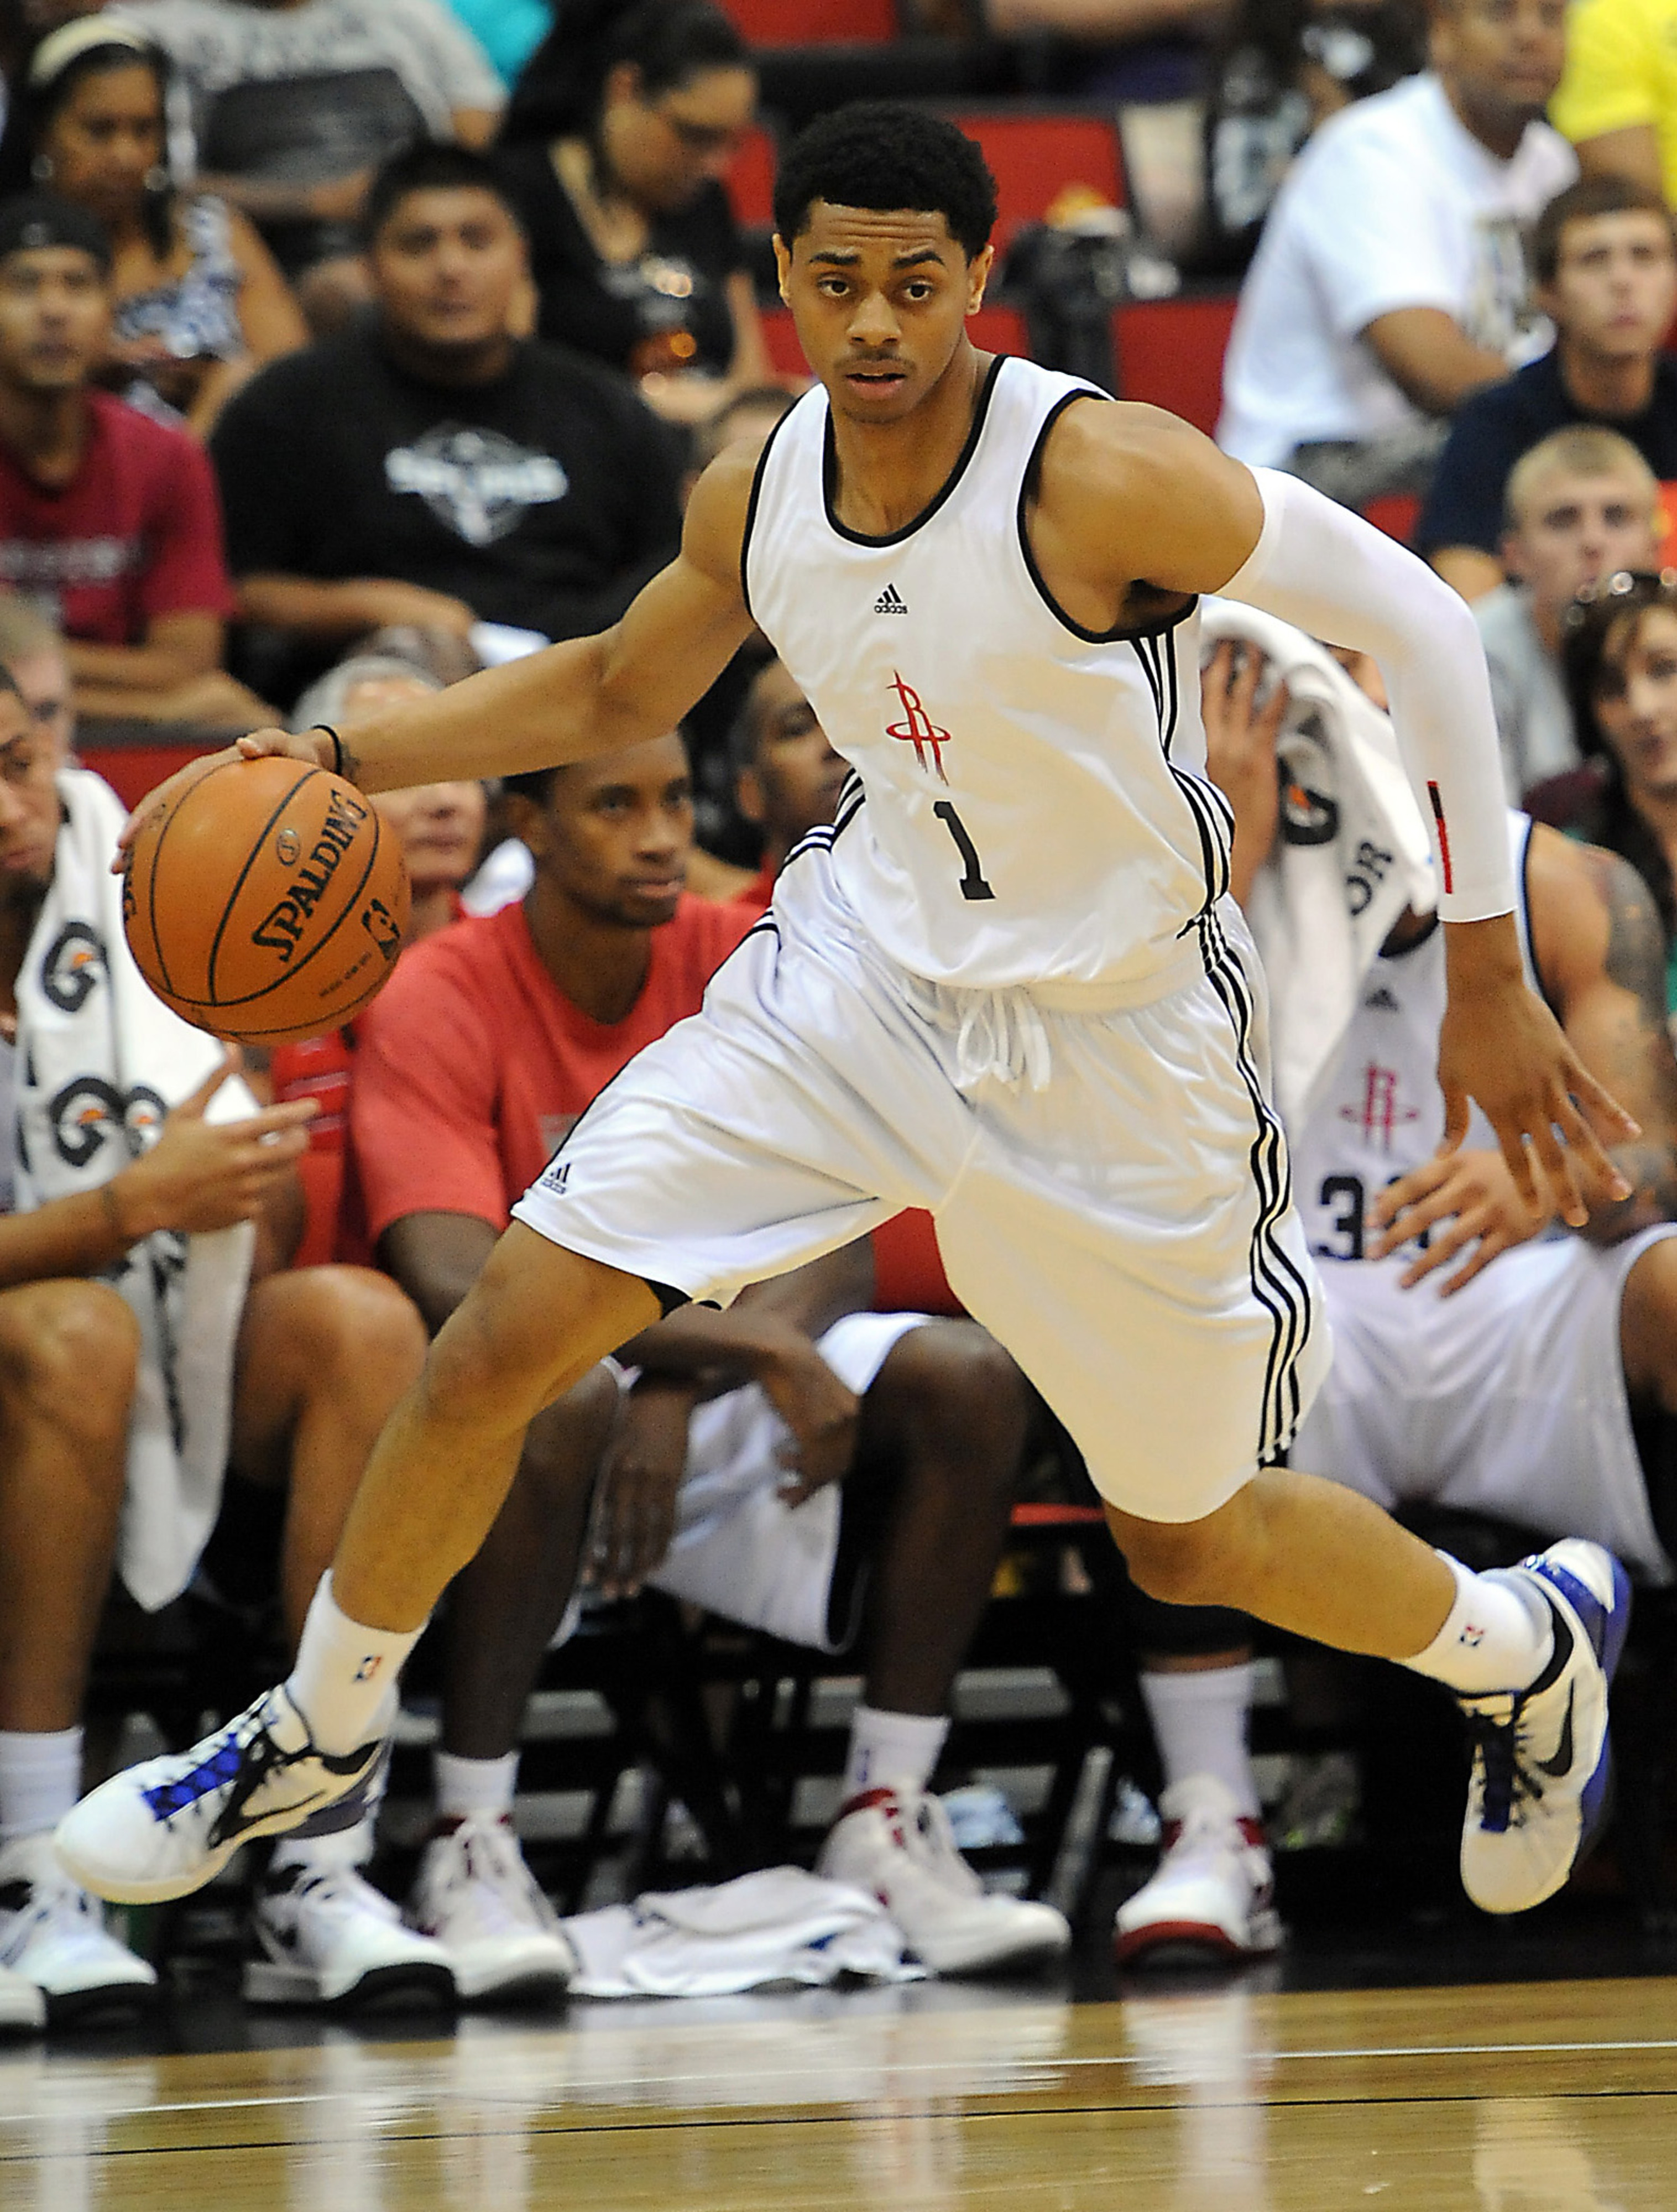 July 18, 2012; Las Vegas, NV, USA;    Houston Rockets guard Jeremy Lamb (1) during the first half of the game against the Chicago Bulls at Cox Pavilion. Mandatory Credit: Jayne Kamin-Oncea-US PRESSWIRE